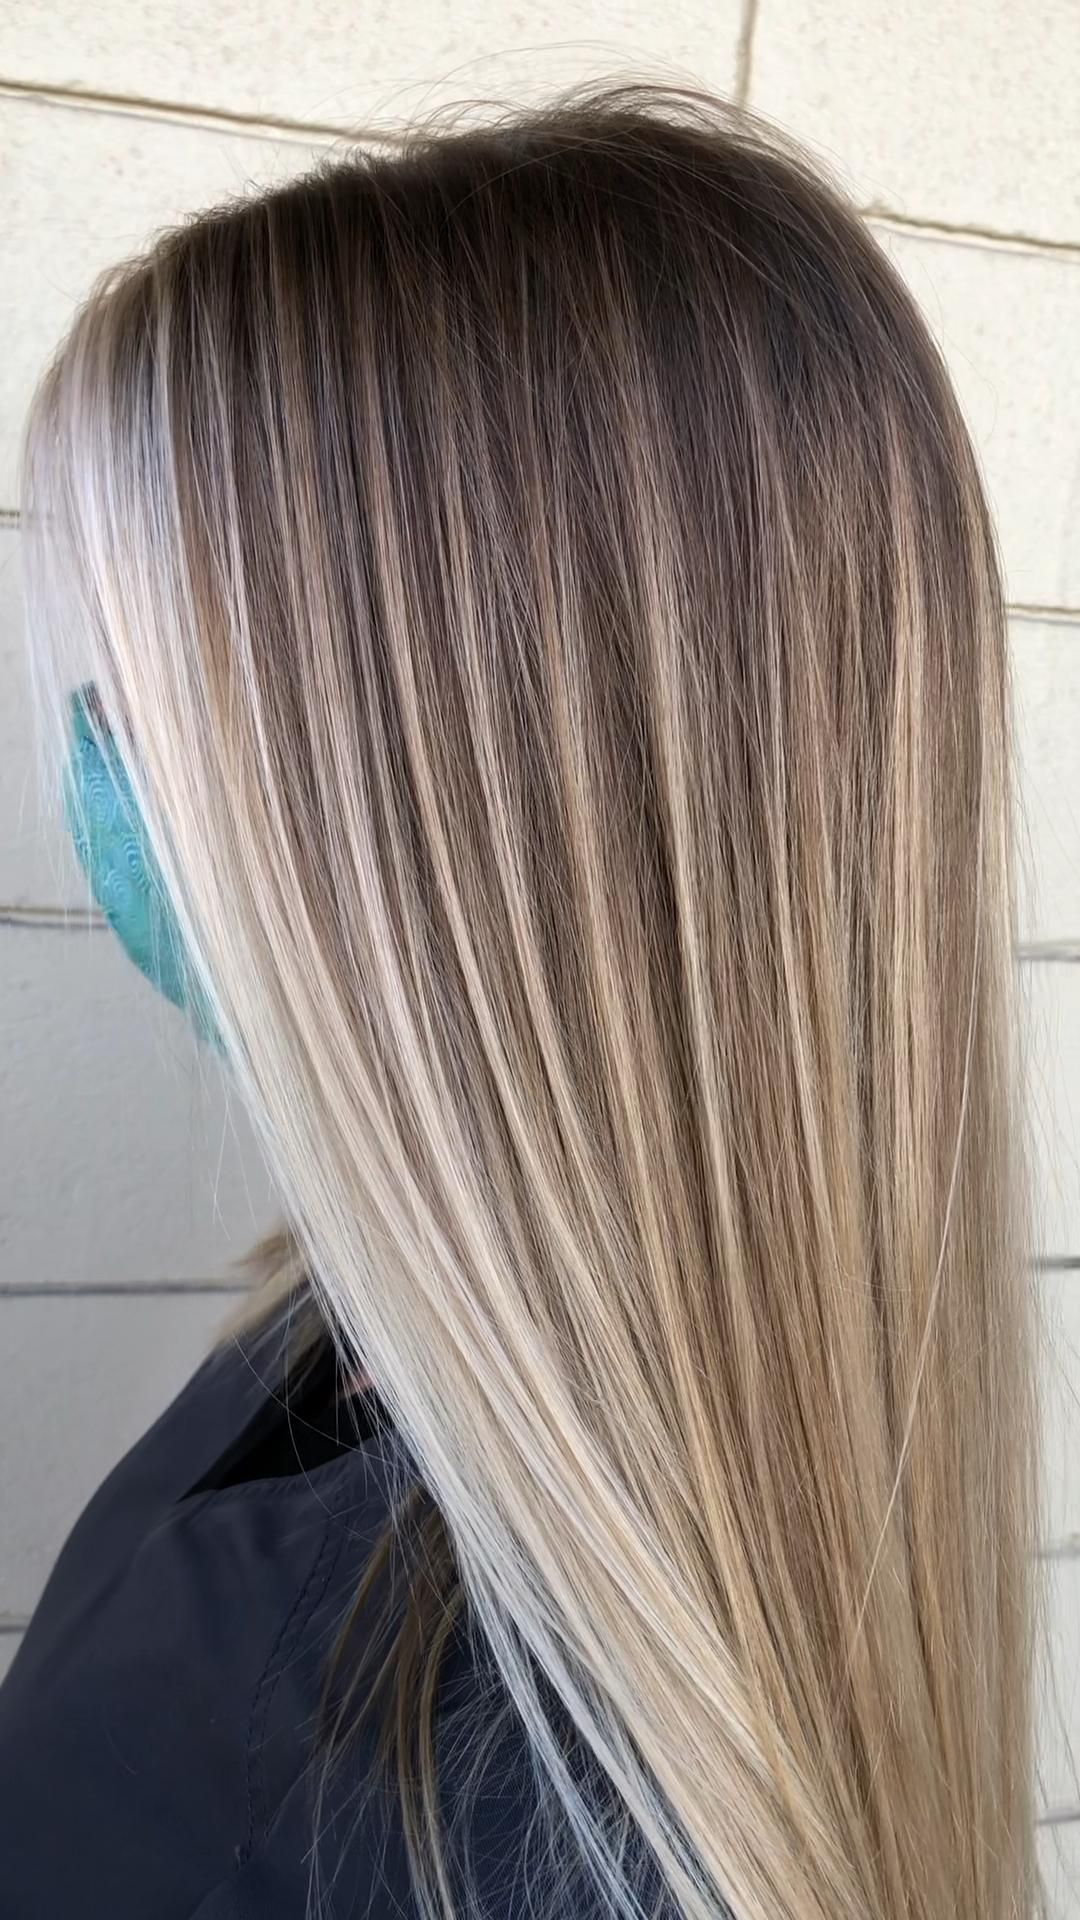 Photo of Lived-in blonde with NO shadow root